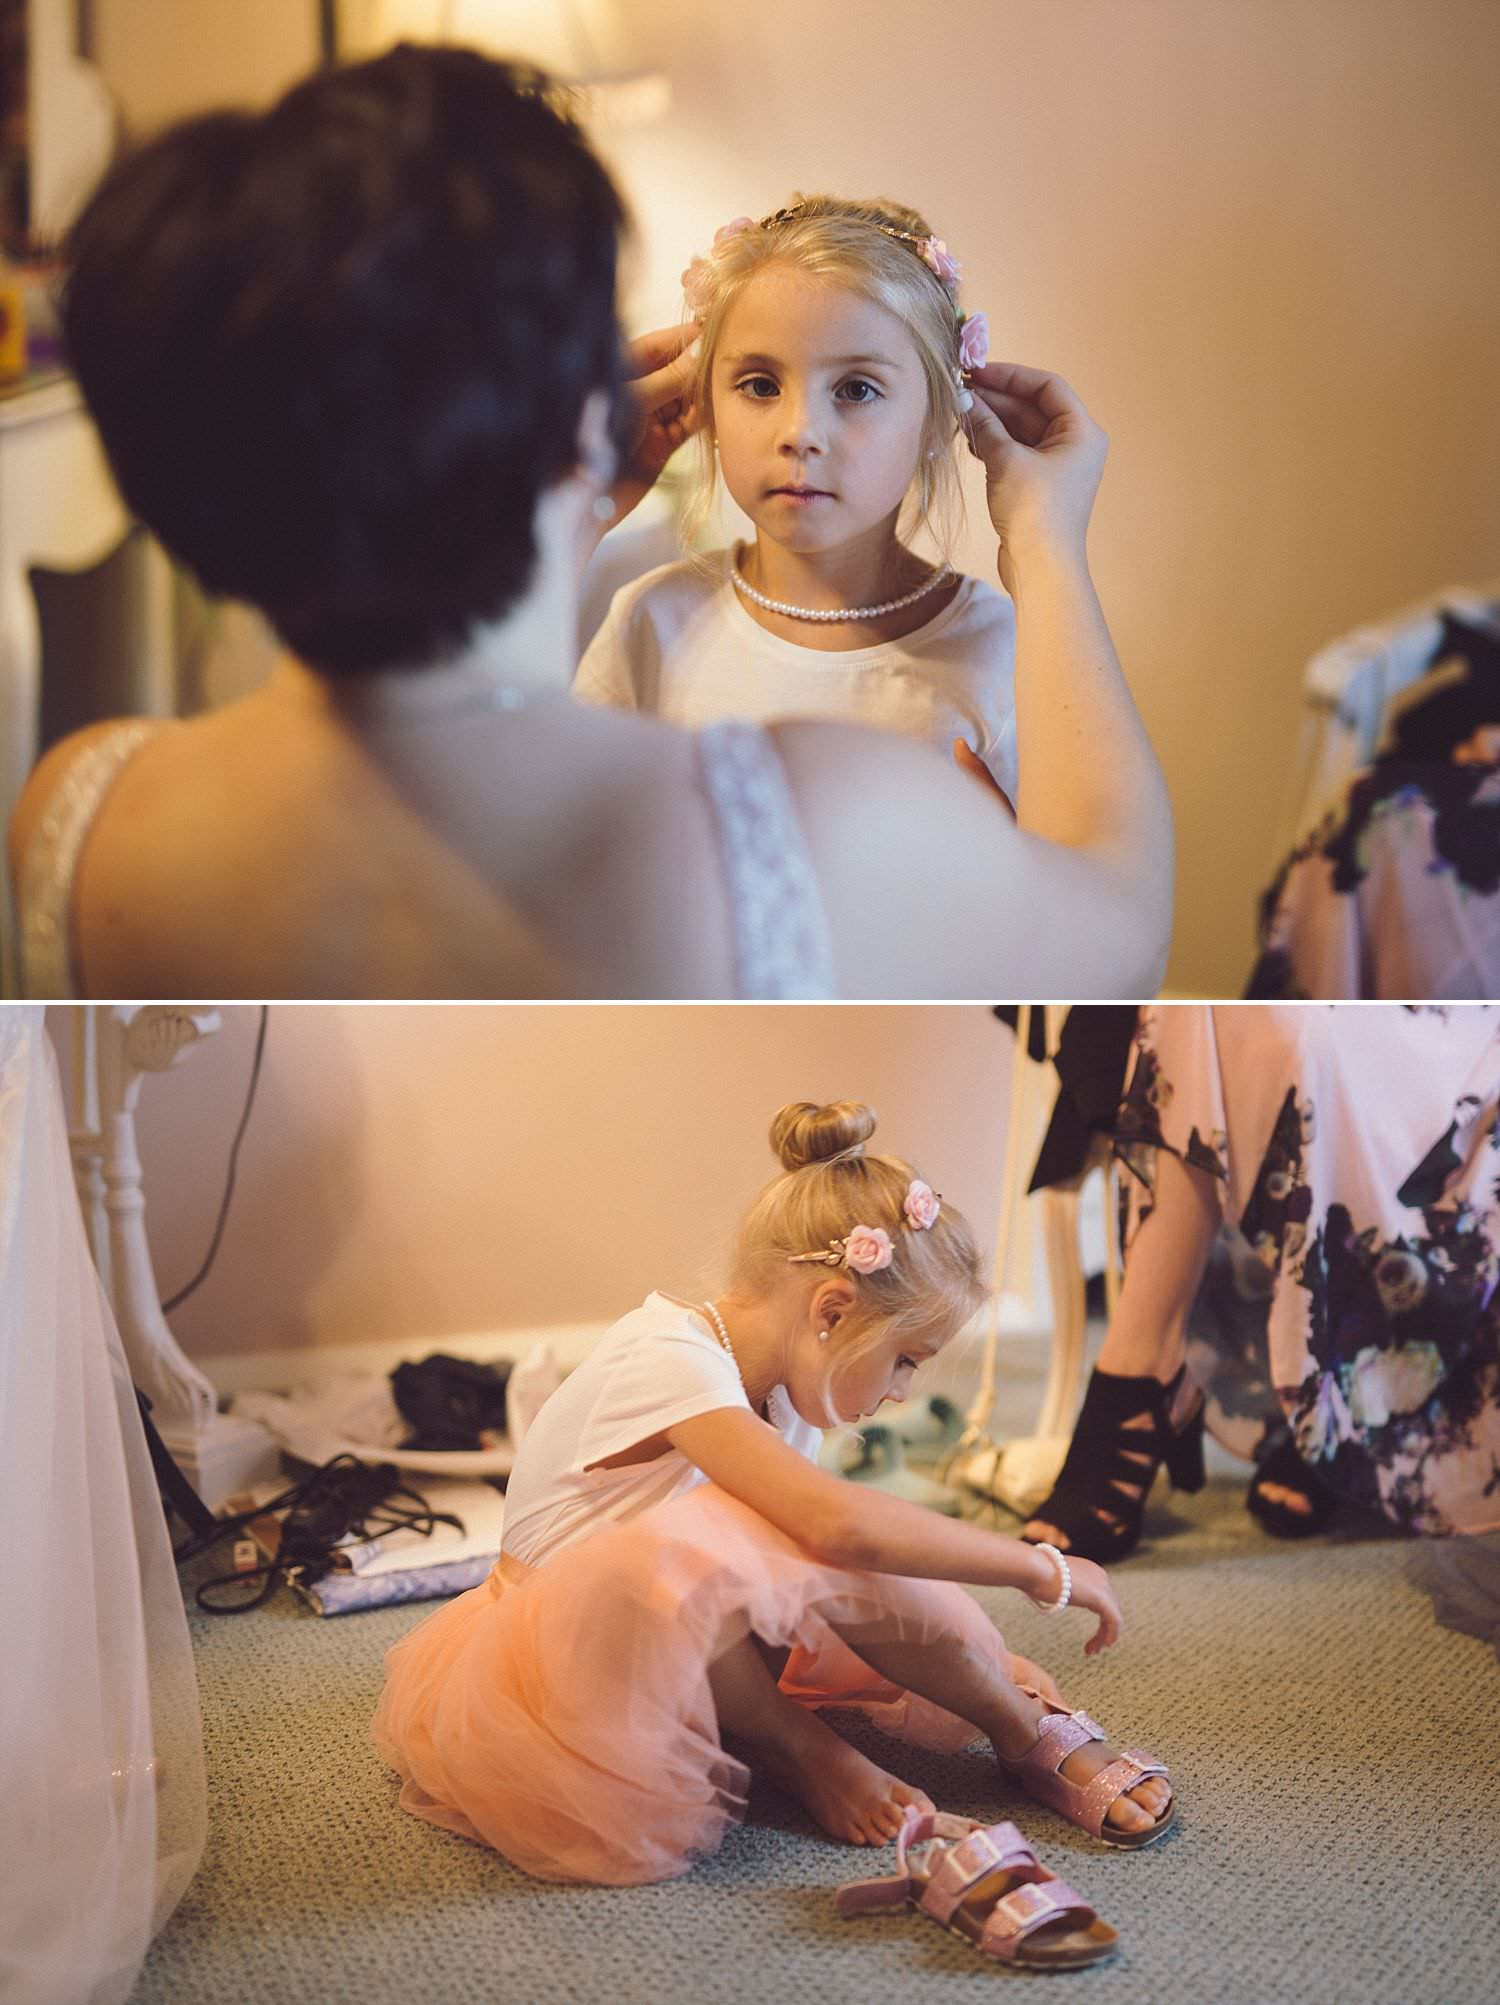 Bride fixing flowergirl's hair, putting little shoes on